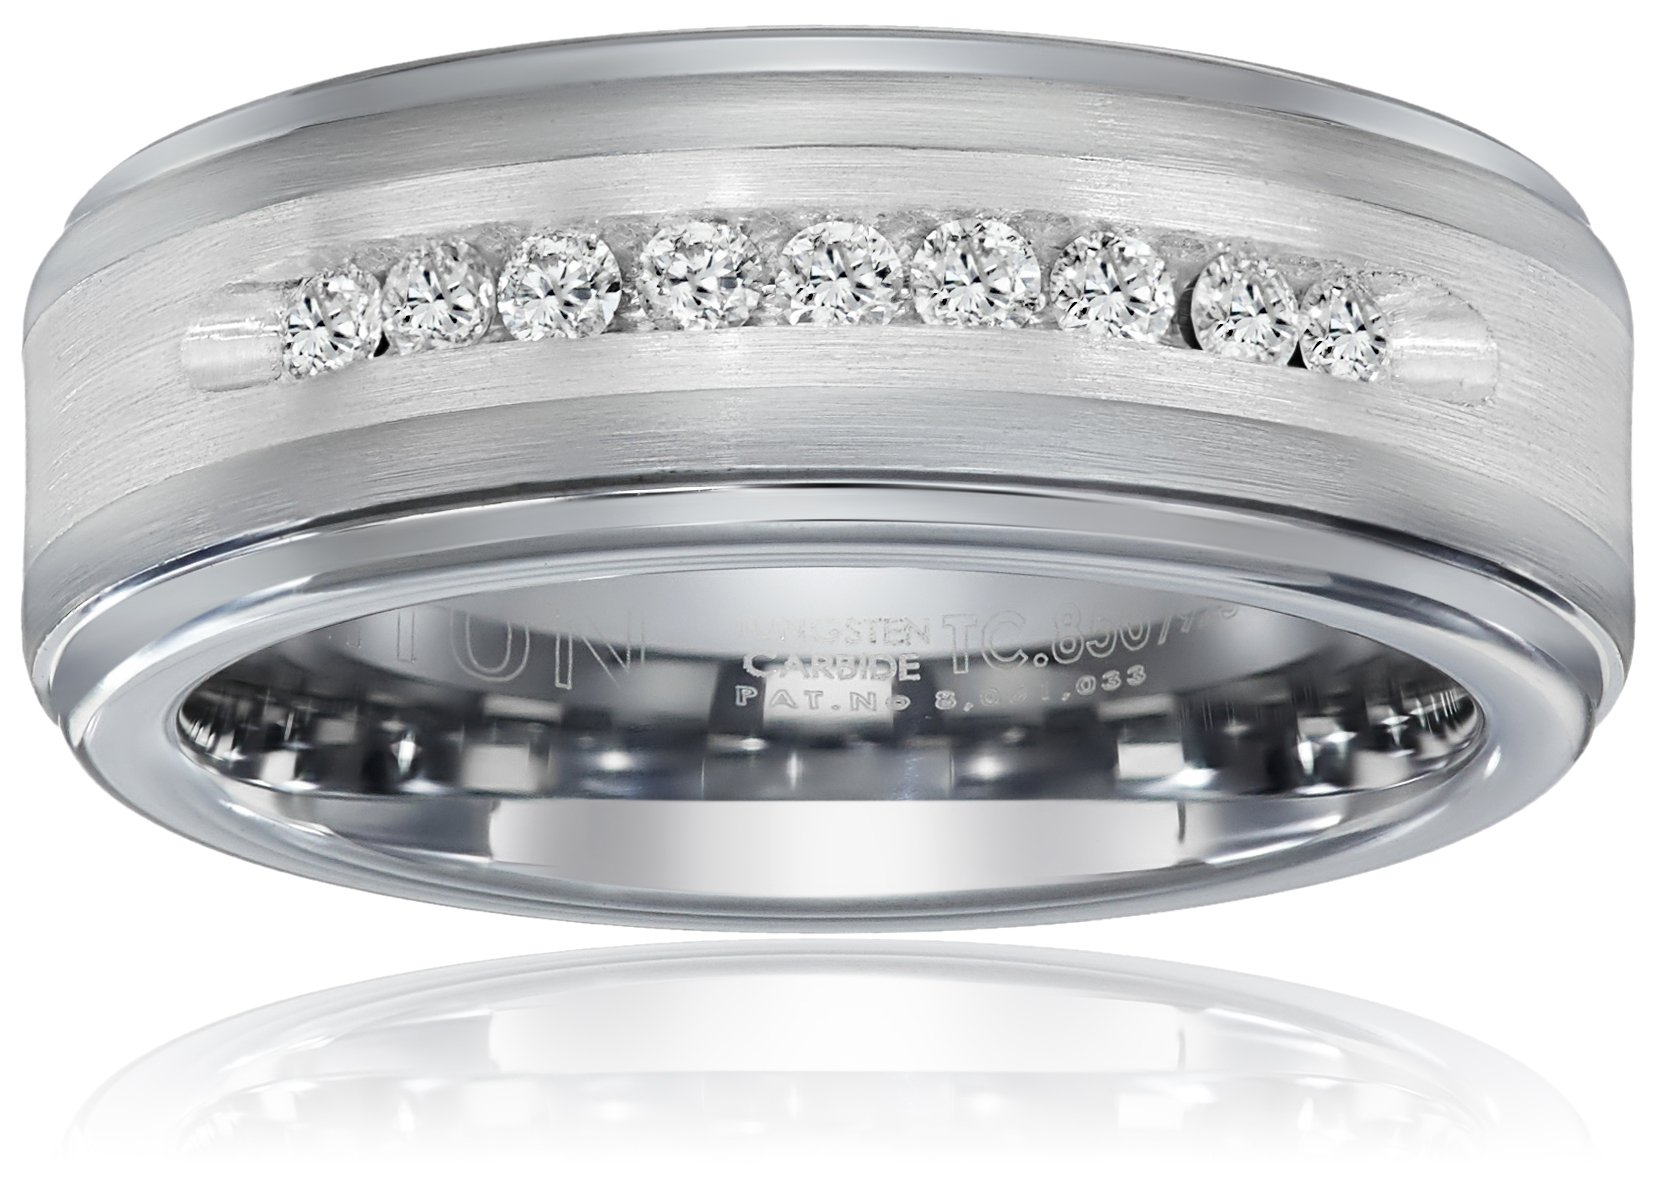 Triton Men's Tungsten and Silver 8mm Comfort Fit Diamond Wedding Band (1/4cttw, I-J Color), Size 11